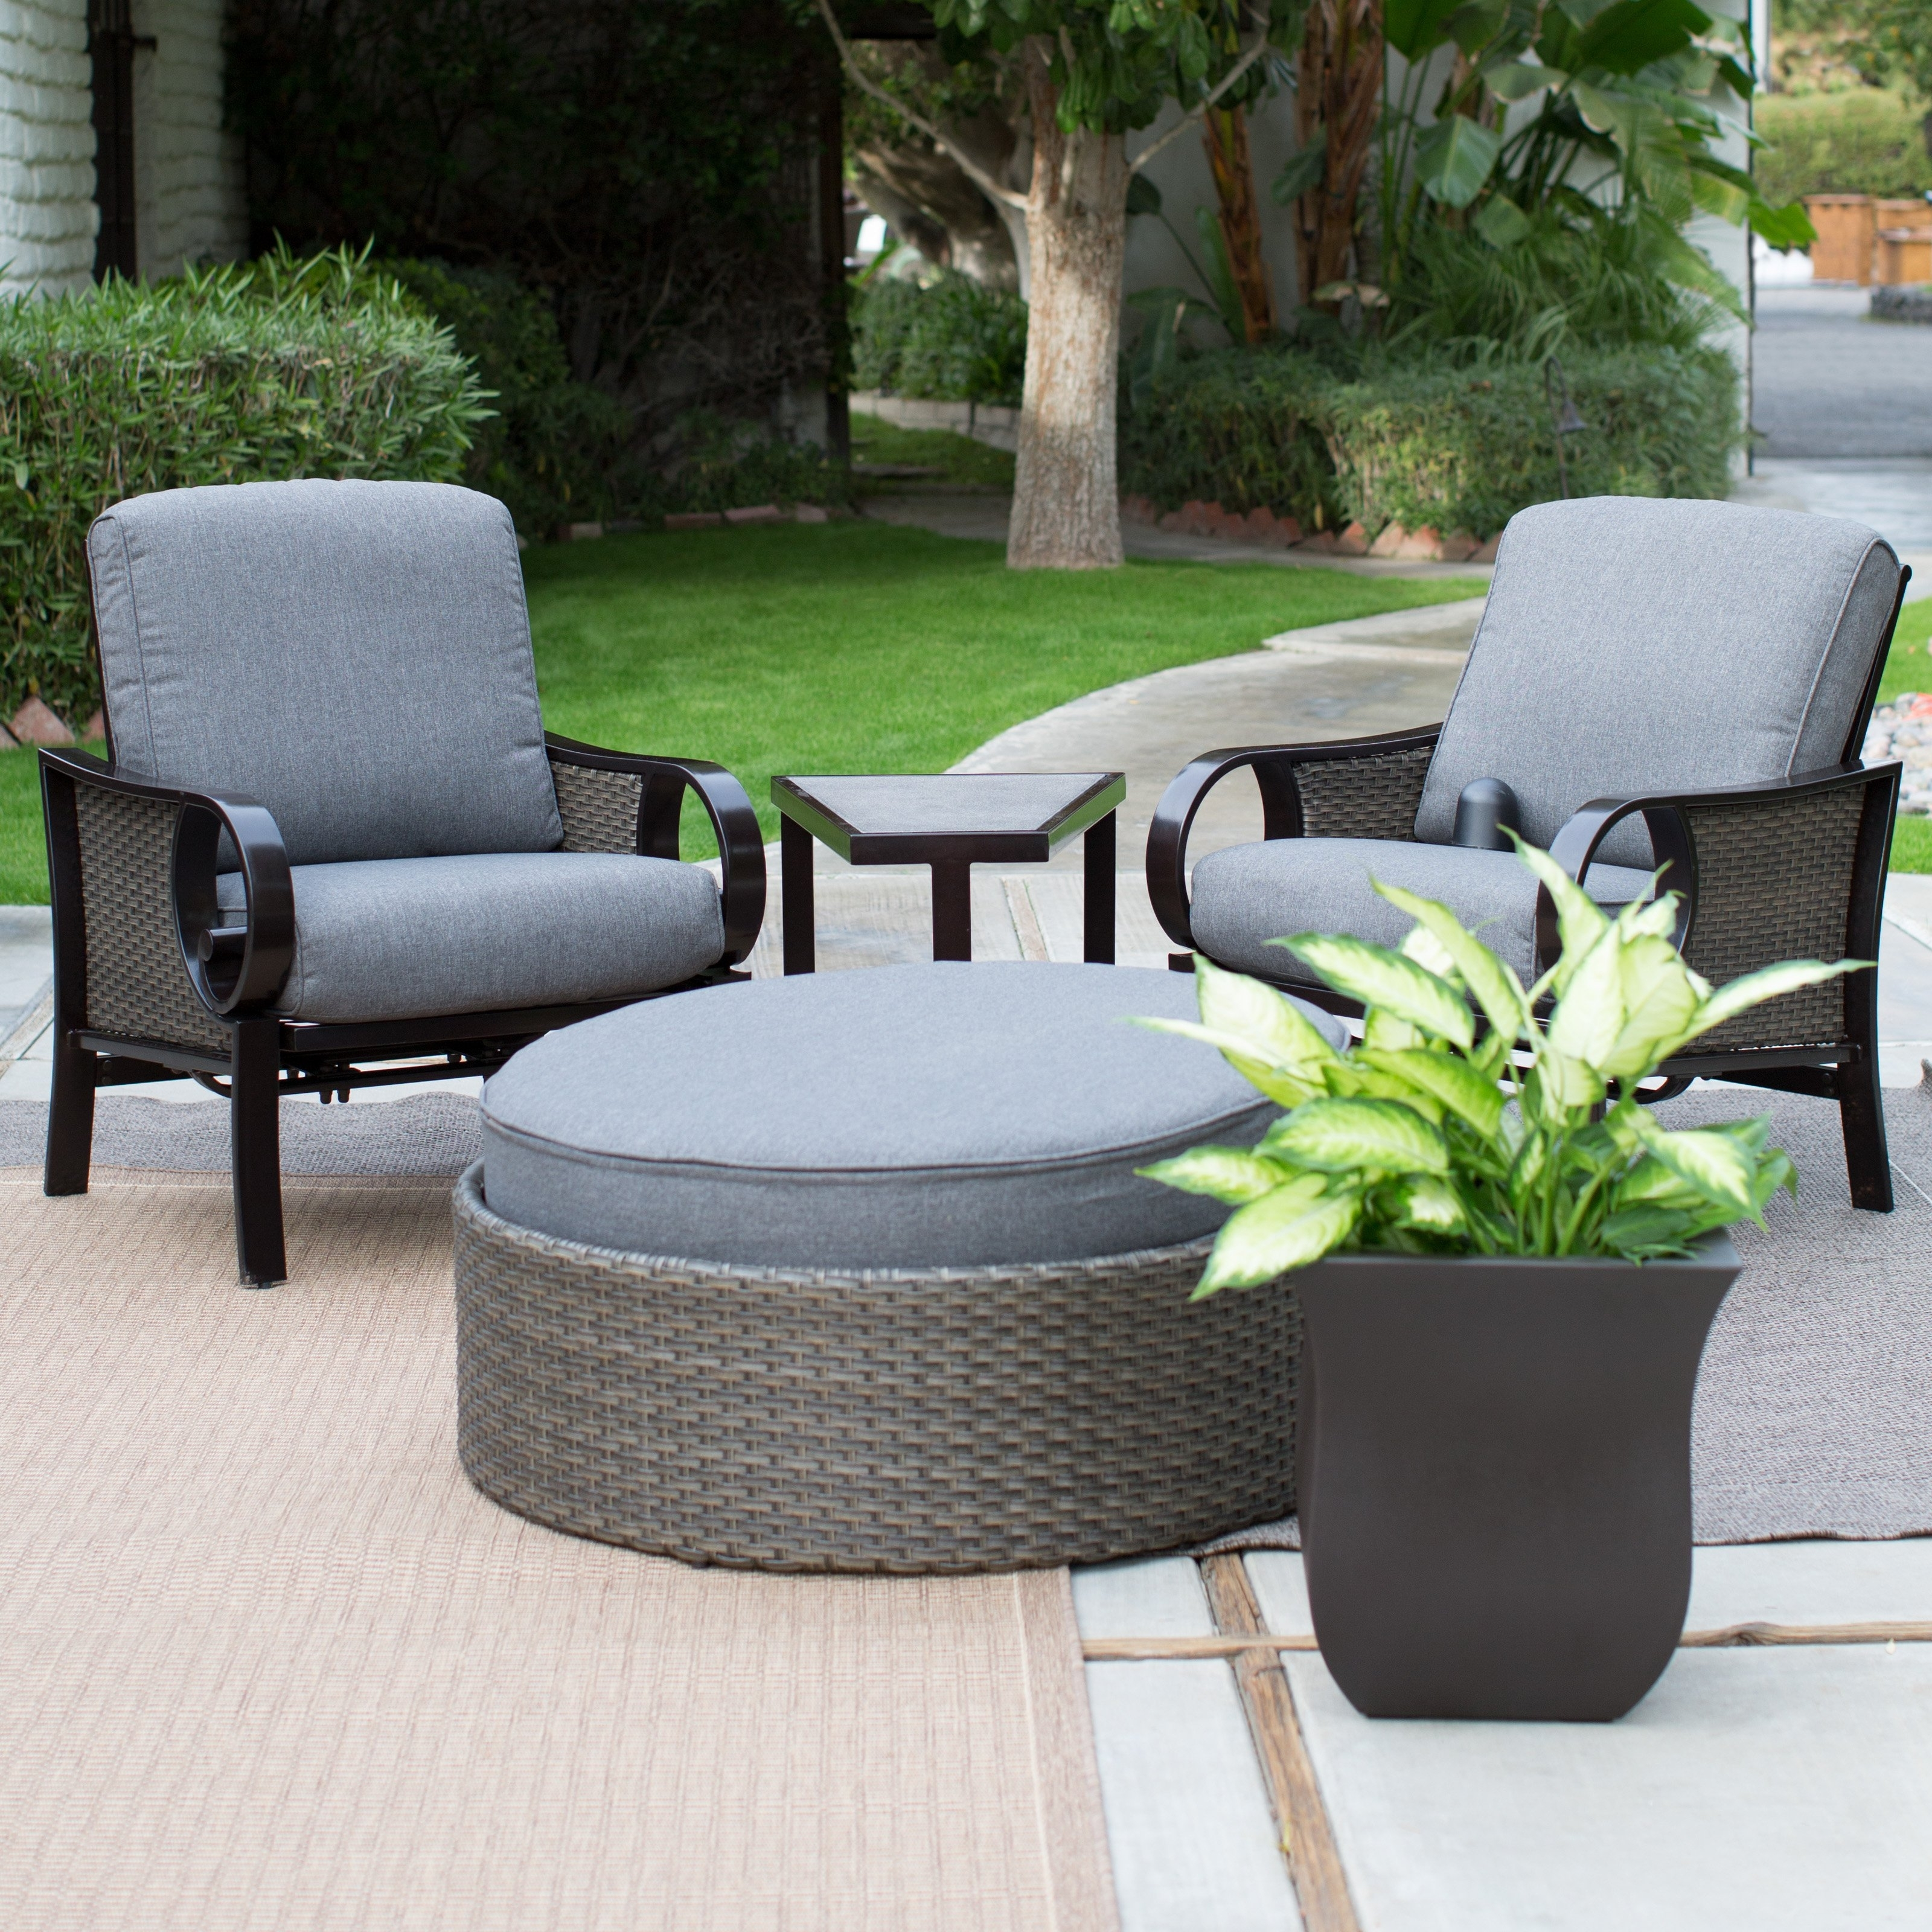 22 Creative Patio Conversation Sets With Ottoman – Pixelmari With Most Up To Date Patio Conversation Sets With Ottoman (View 10 of 20)